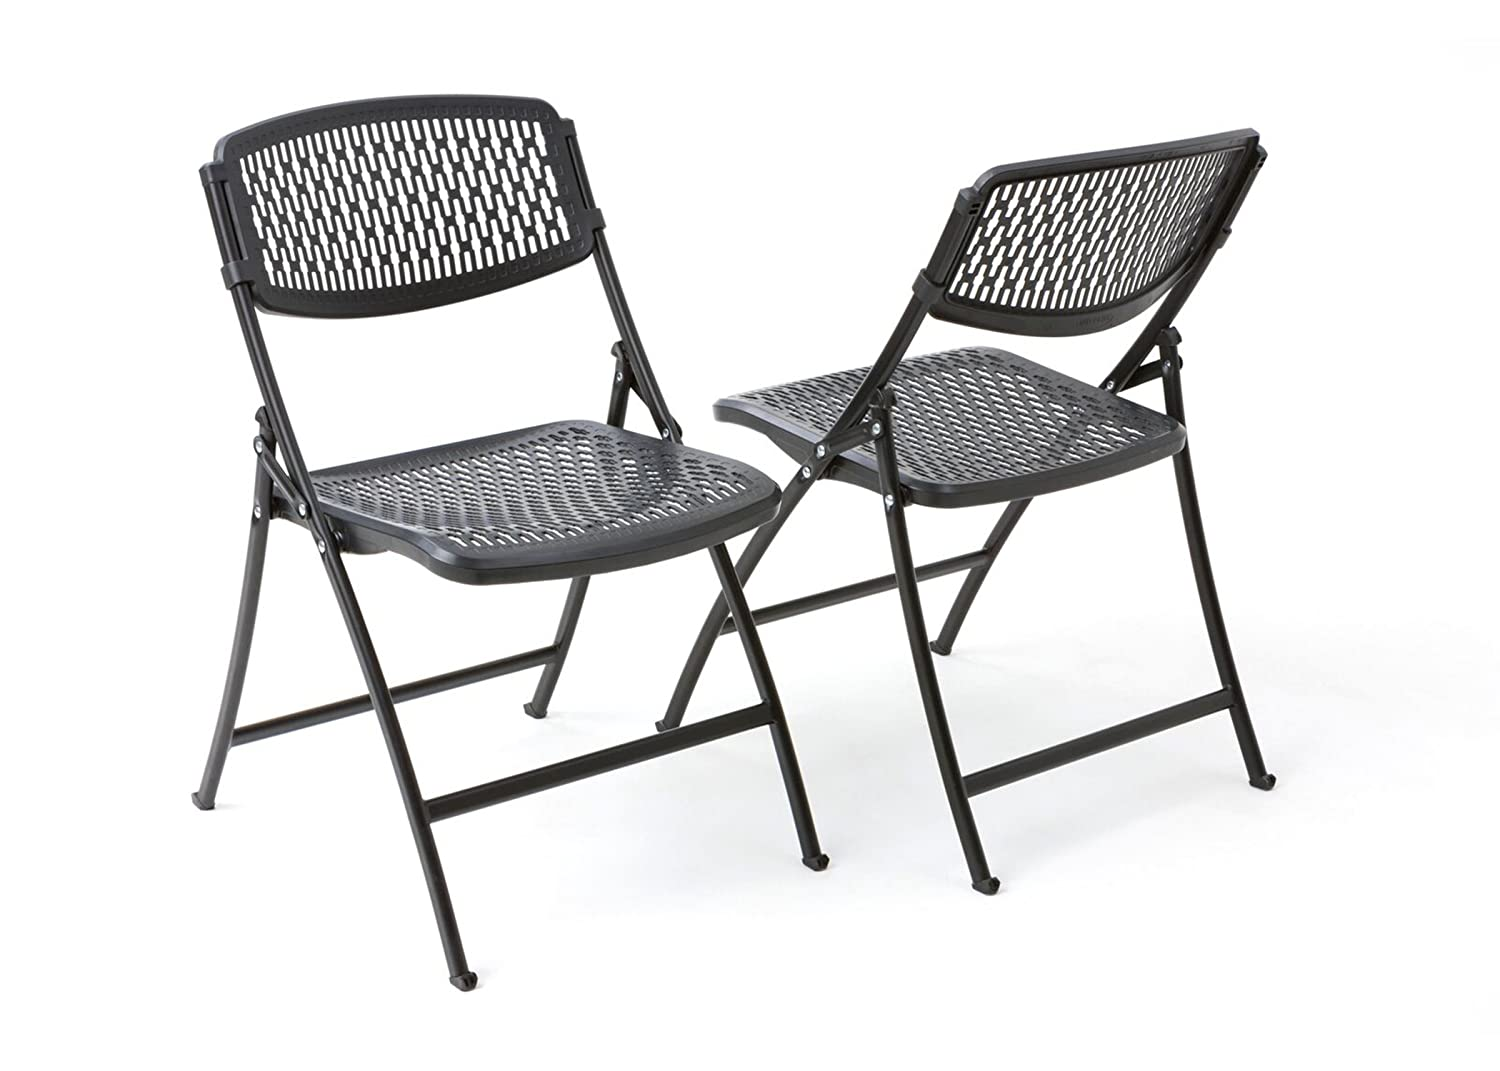 Mity-Lite Flex One Folding Chair, Black, 4-Pack: Industrial & Scientific